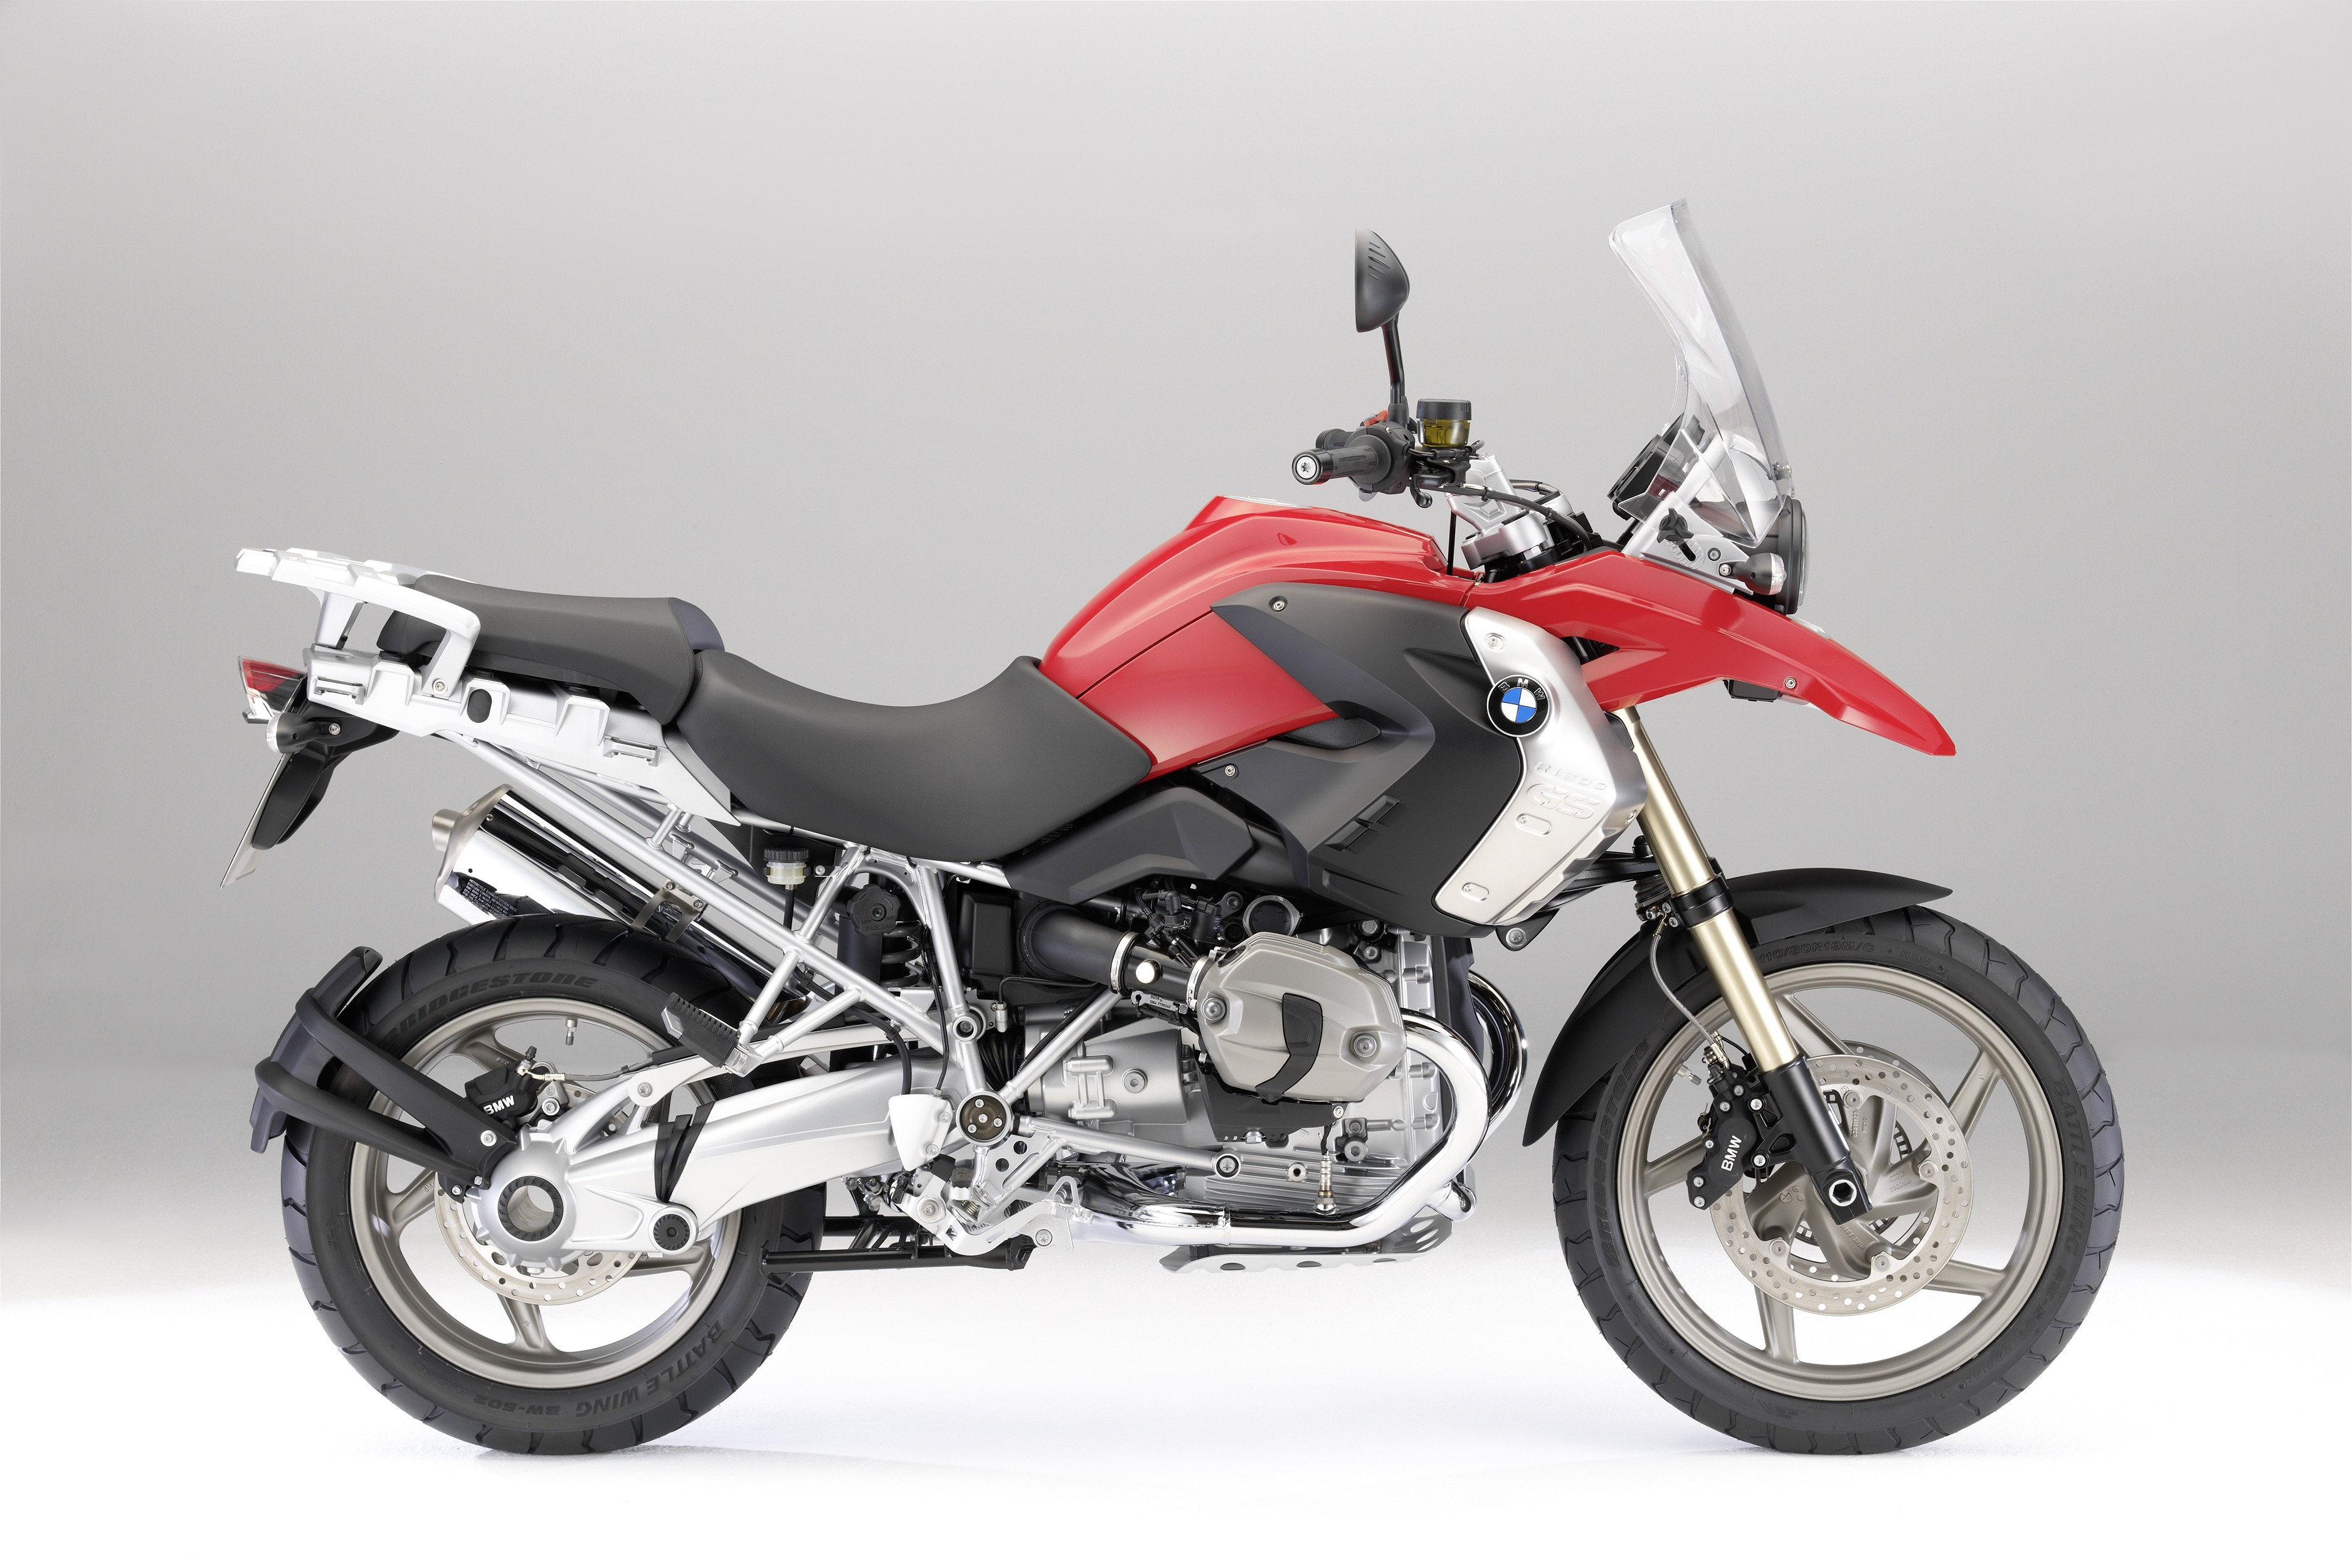 2010 BMW R1200GS - Motorcycle Reviews, Specs and Prices